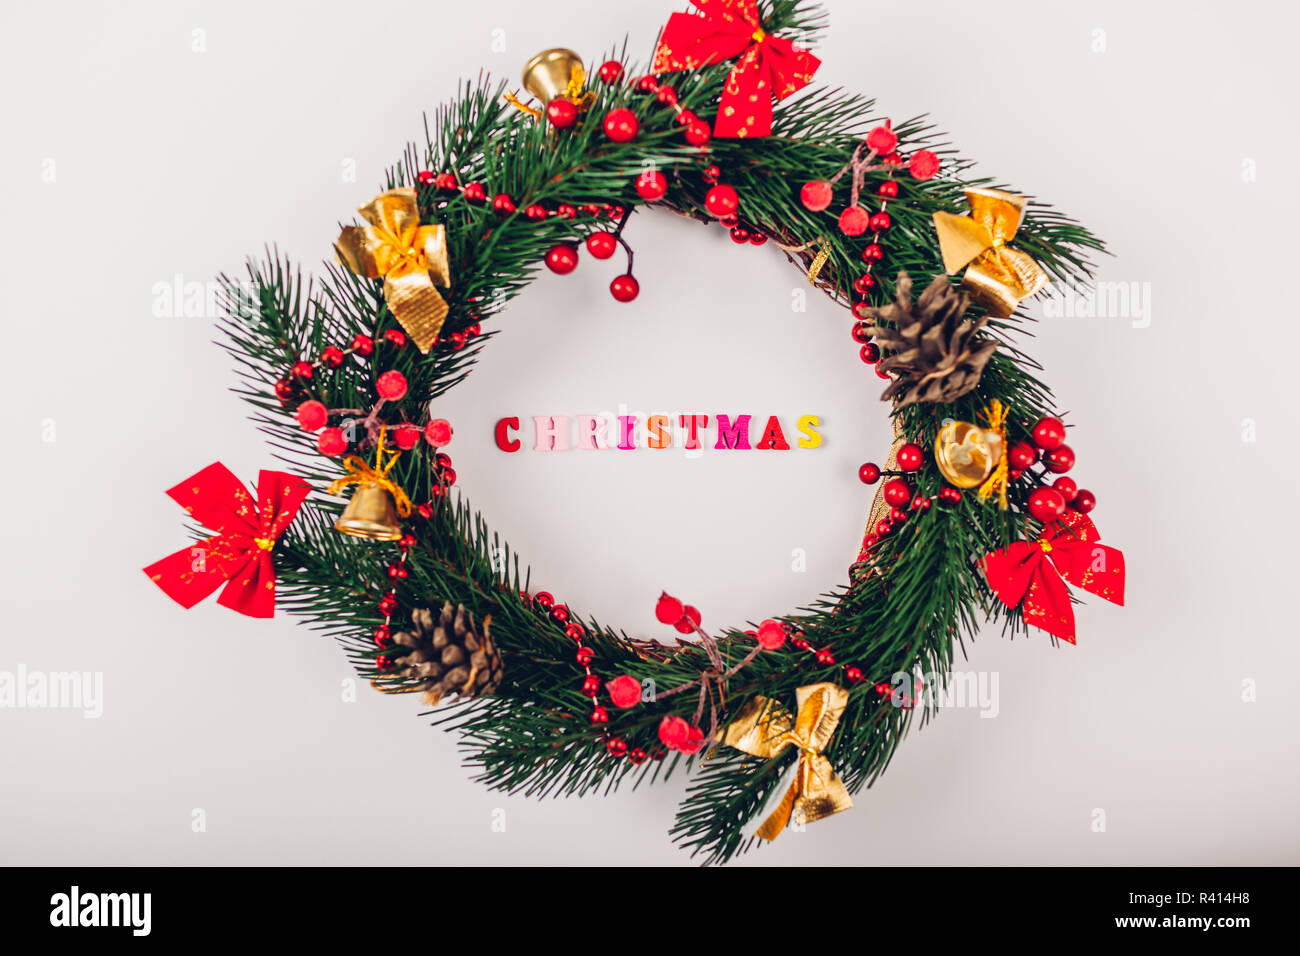 Christmas wreath with decoration on white background. Christmas title made of colorful wooden letters inside Stock Photo